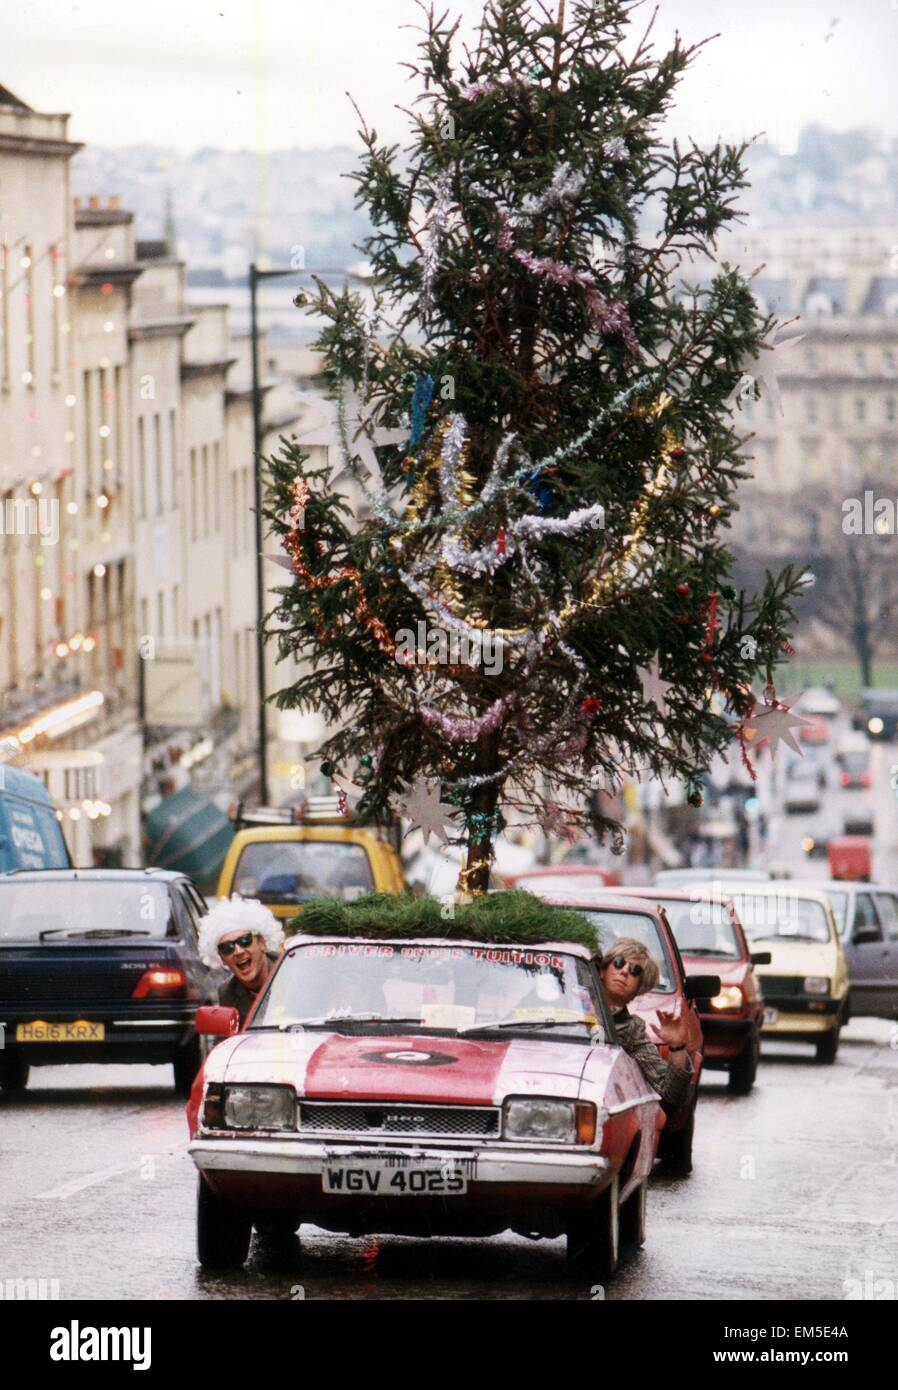 Ian Johnson Drives His Ford Capri With A Christmas Tree On The  - Christmas Tree On Car